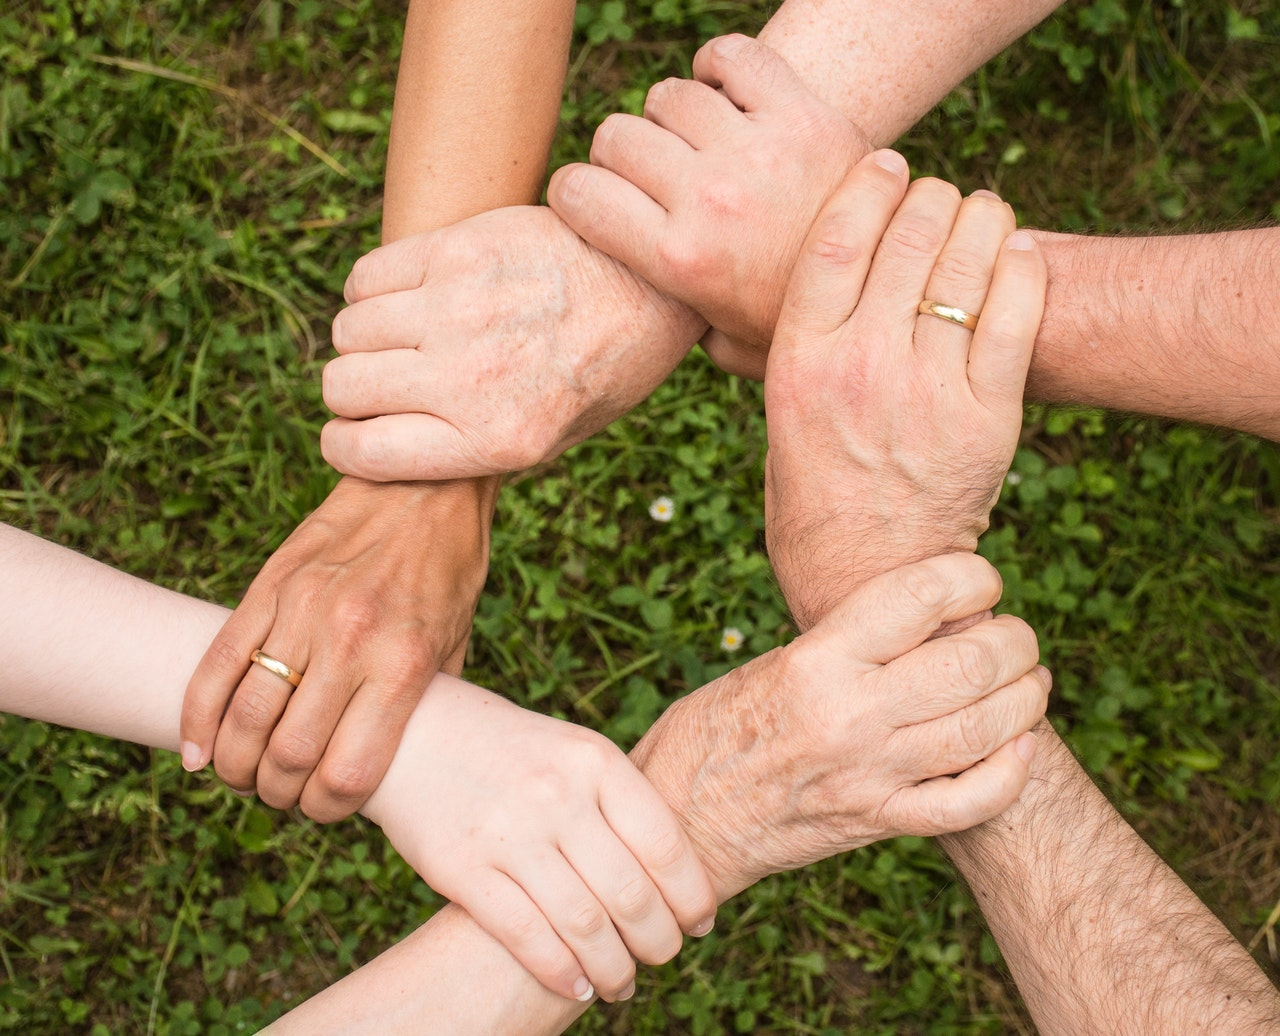 Joining Hands: A Flow of Compassion